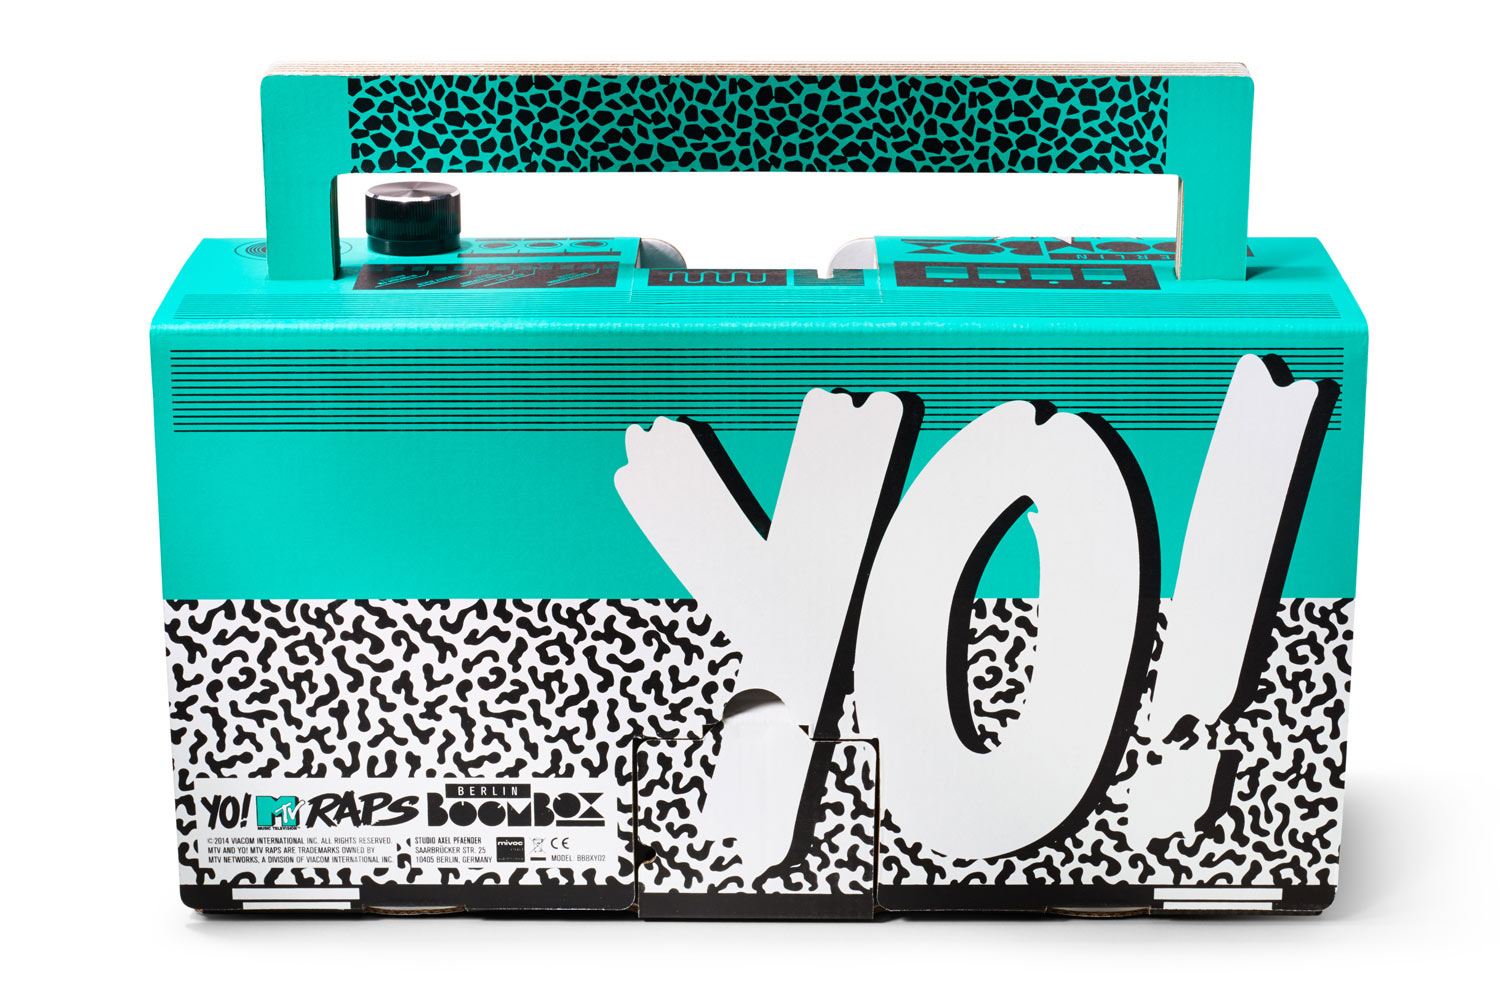 Yo! MTV Raps Boombox by Berlin Boombox. Designed by Axel Pfaender